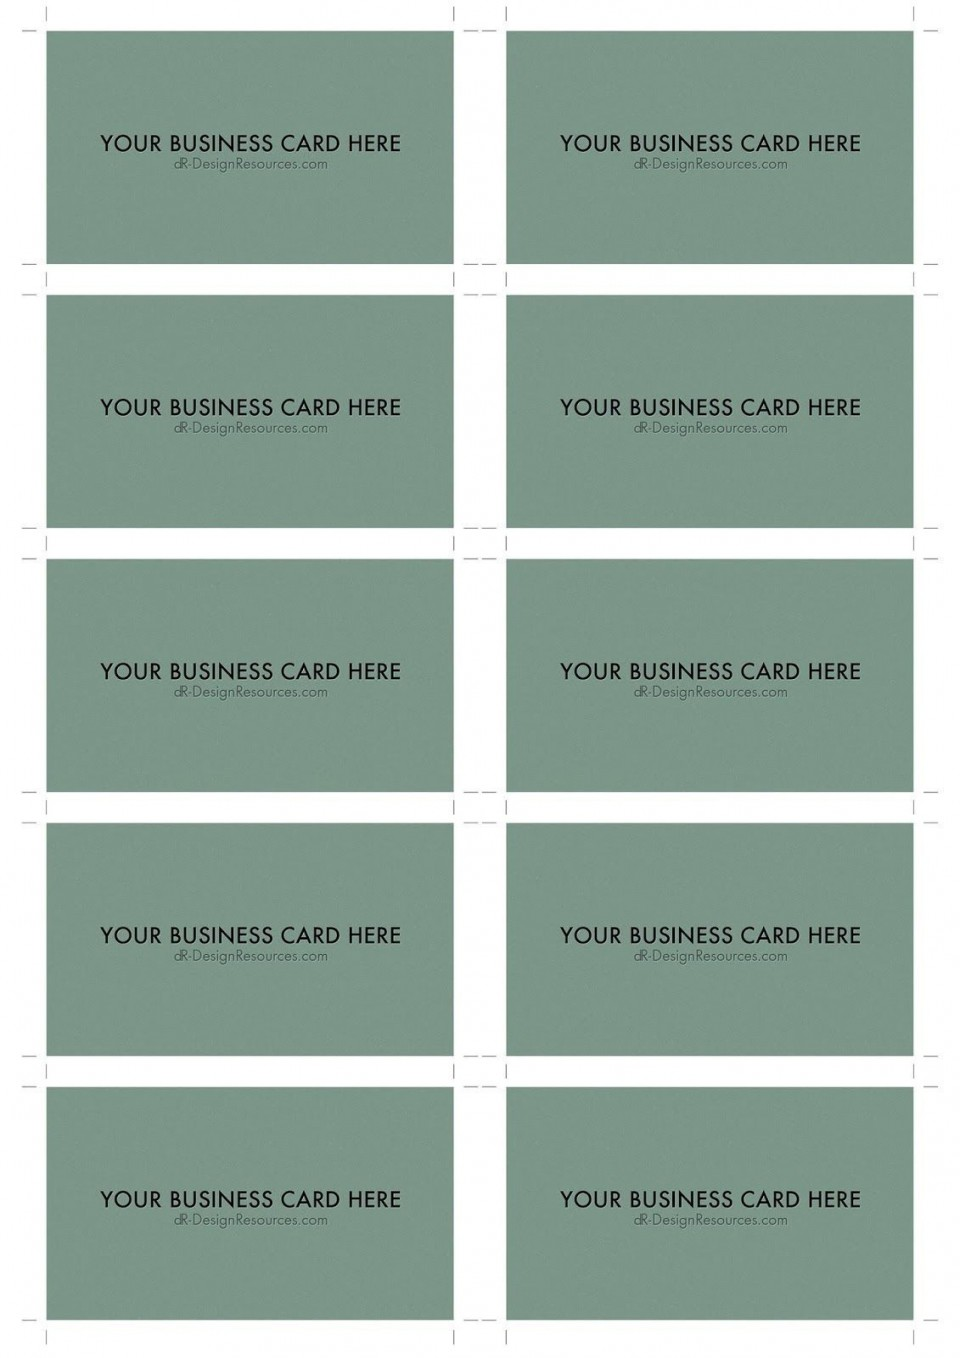 000 Surprising Blank Busines Card Template Photoshop Inspiration  Free Download Psd960